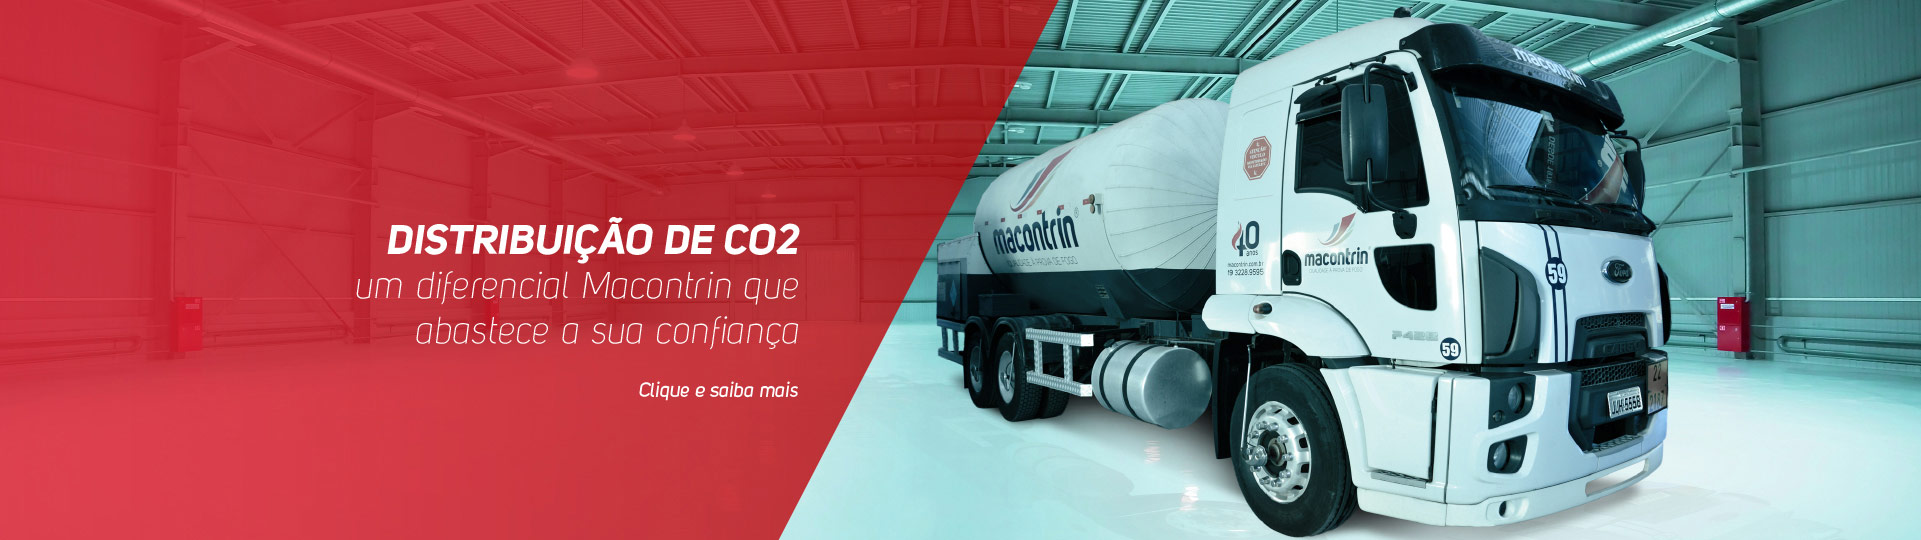 distribuicao-co2-full-banner